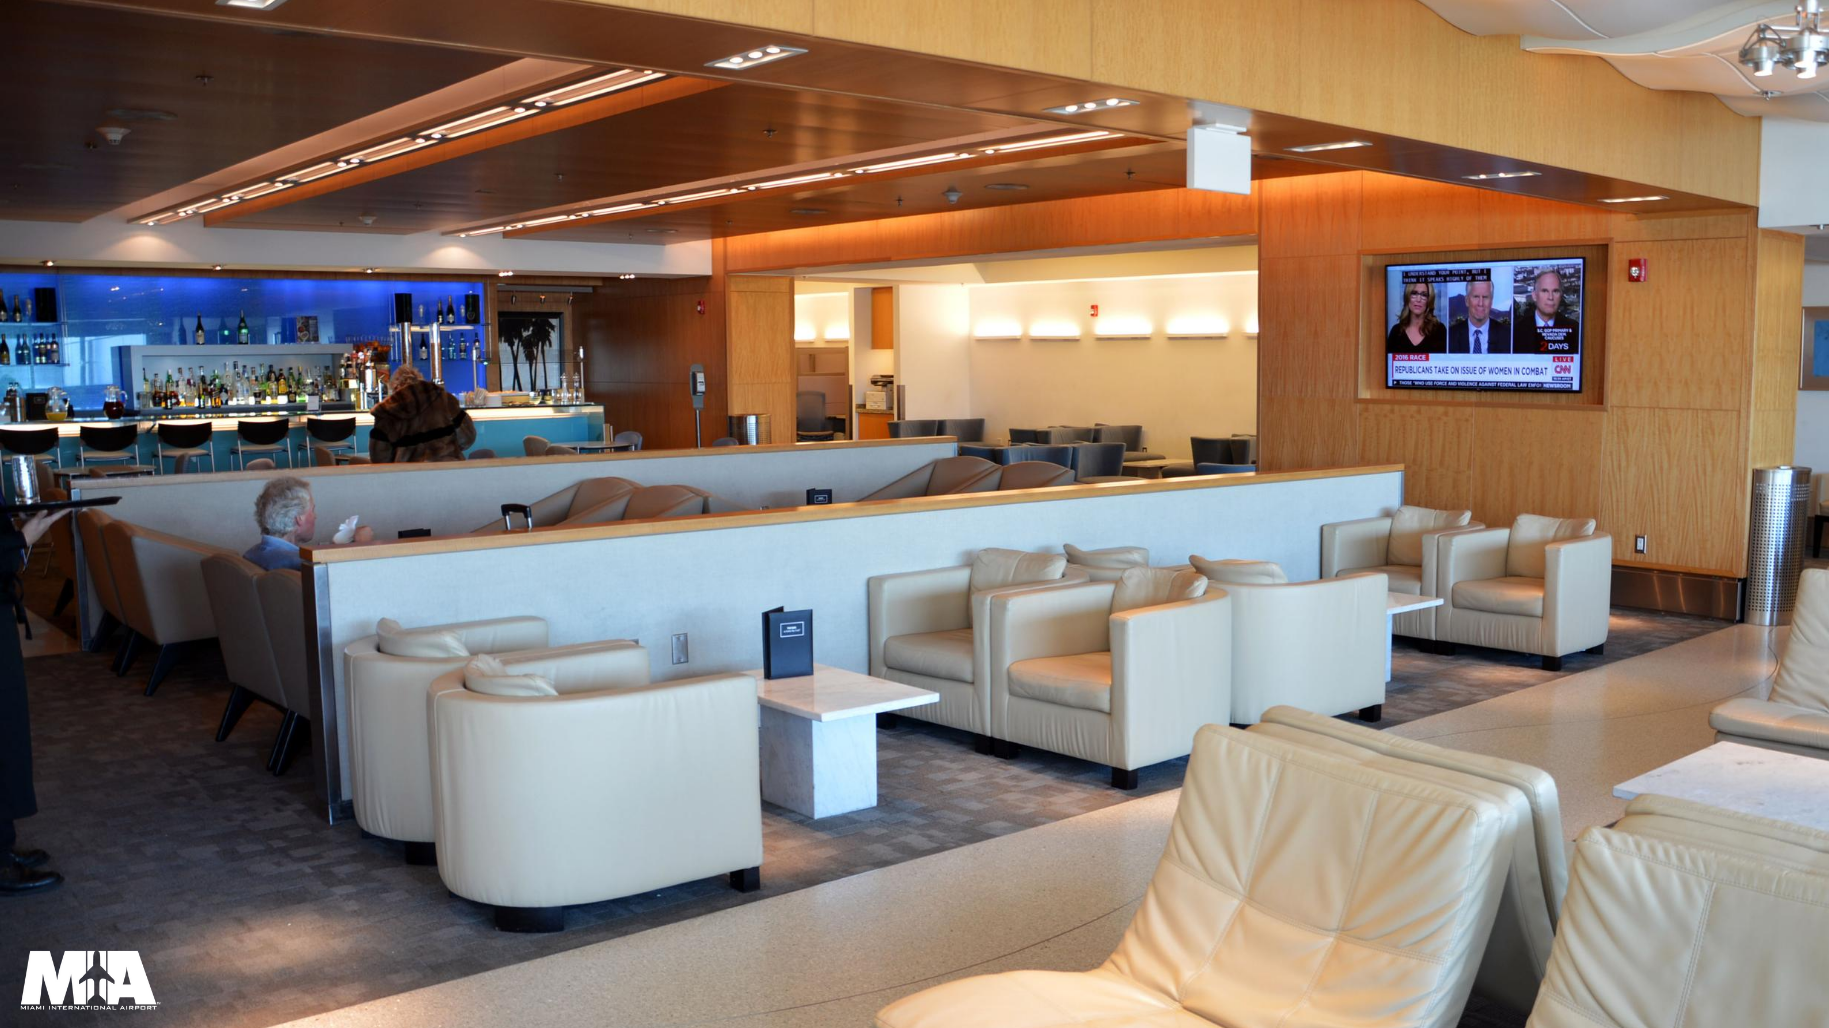 07.23.20 Delta Sky Club Reopening